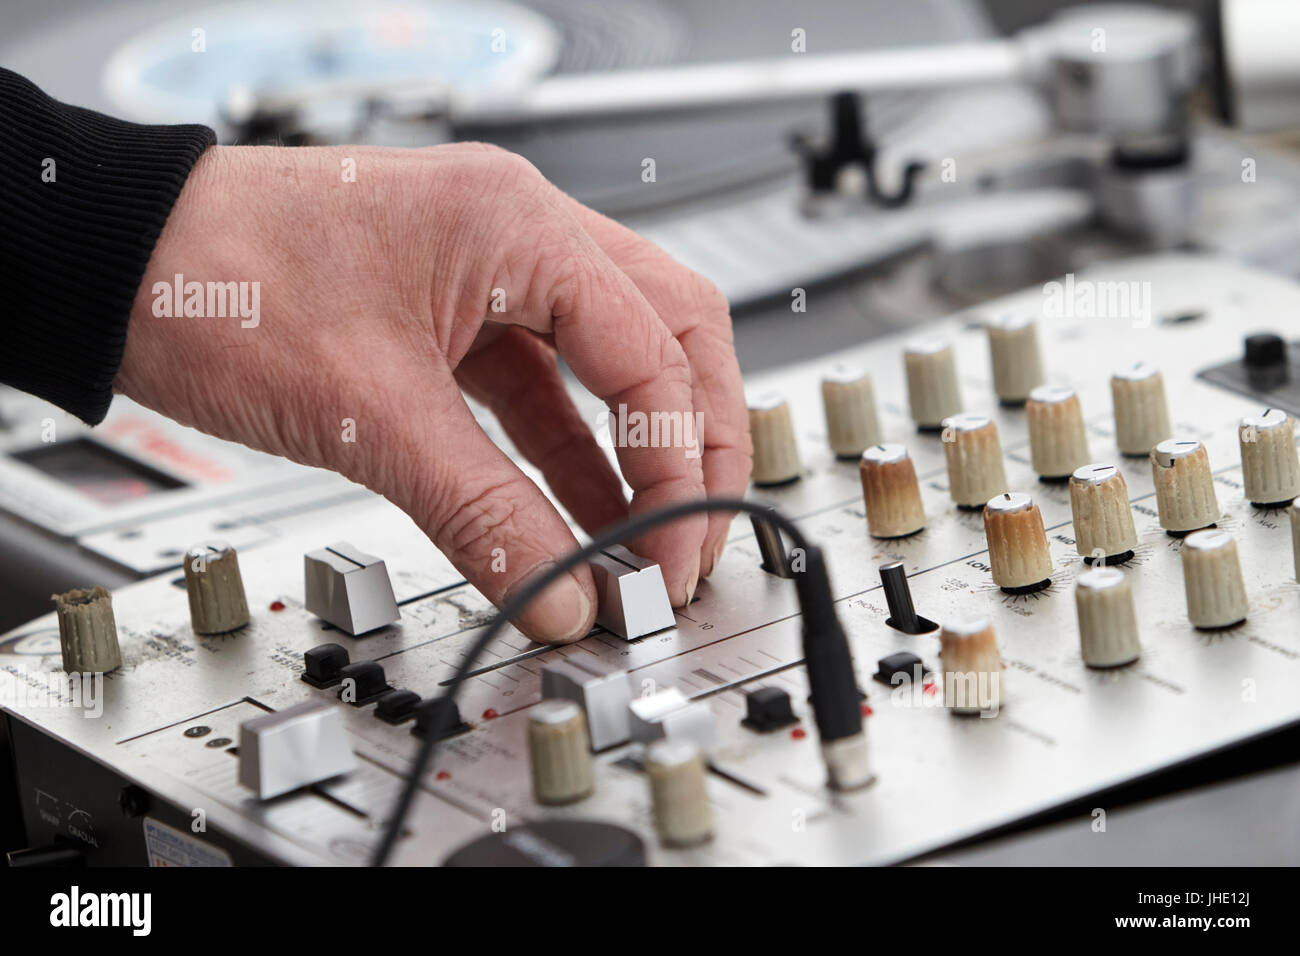 dj mixing lp vinyl records - Stock Image